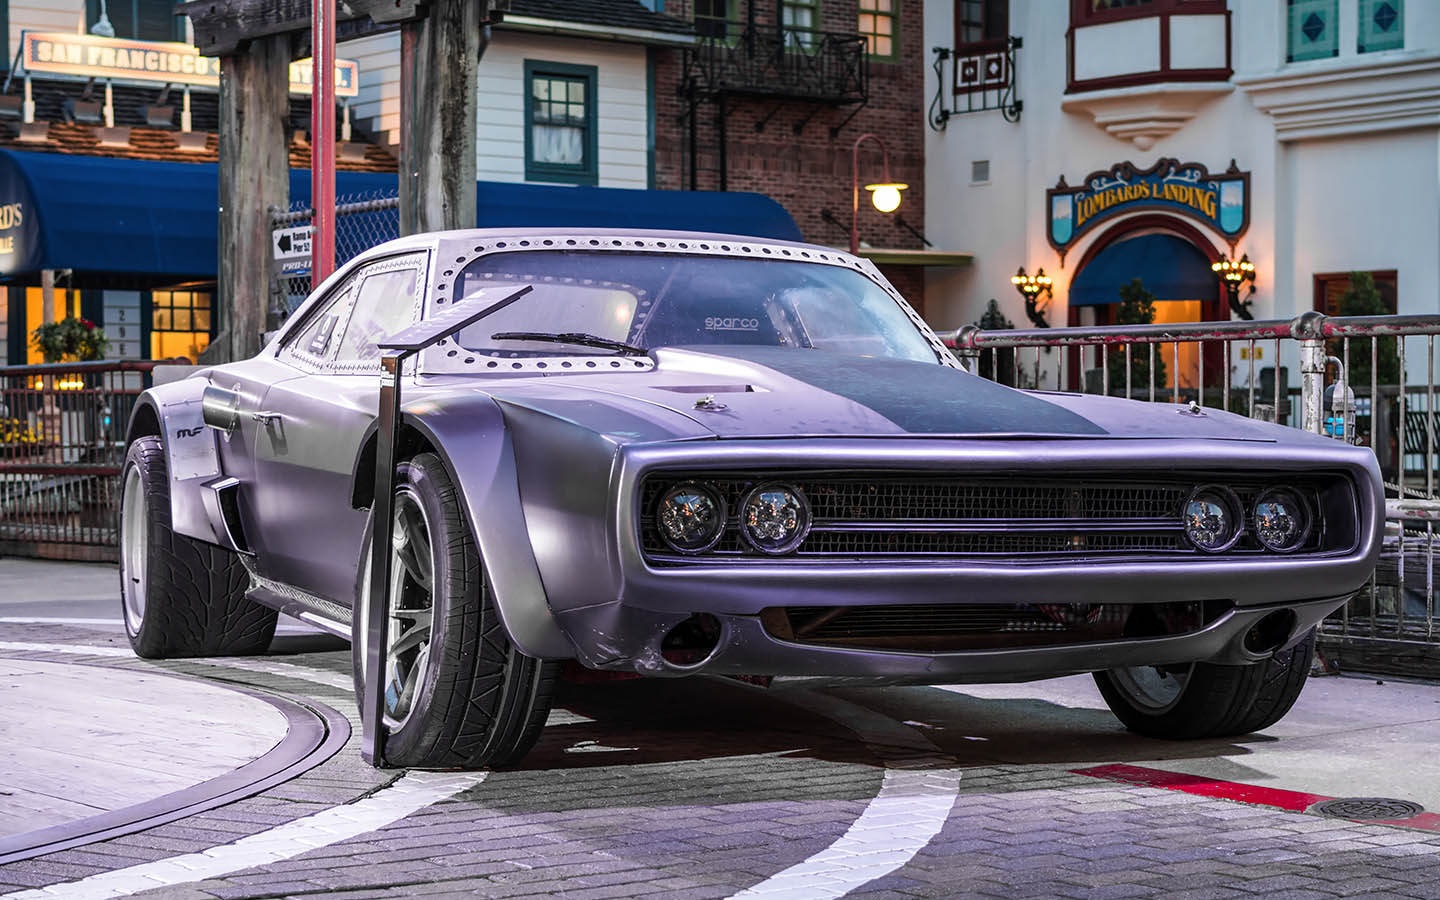 f8 fast and the furious cars on display at universal studios orlando coaster nation. Black Bedroom Furniture Sets. Home Design Ideas